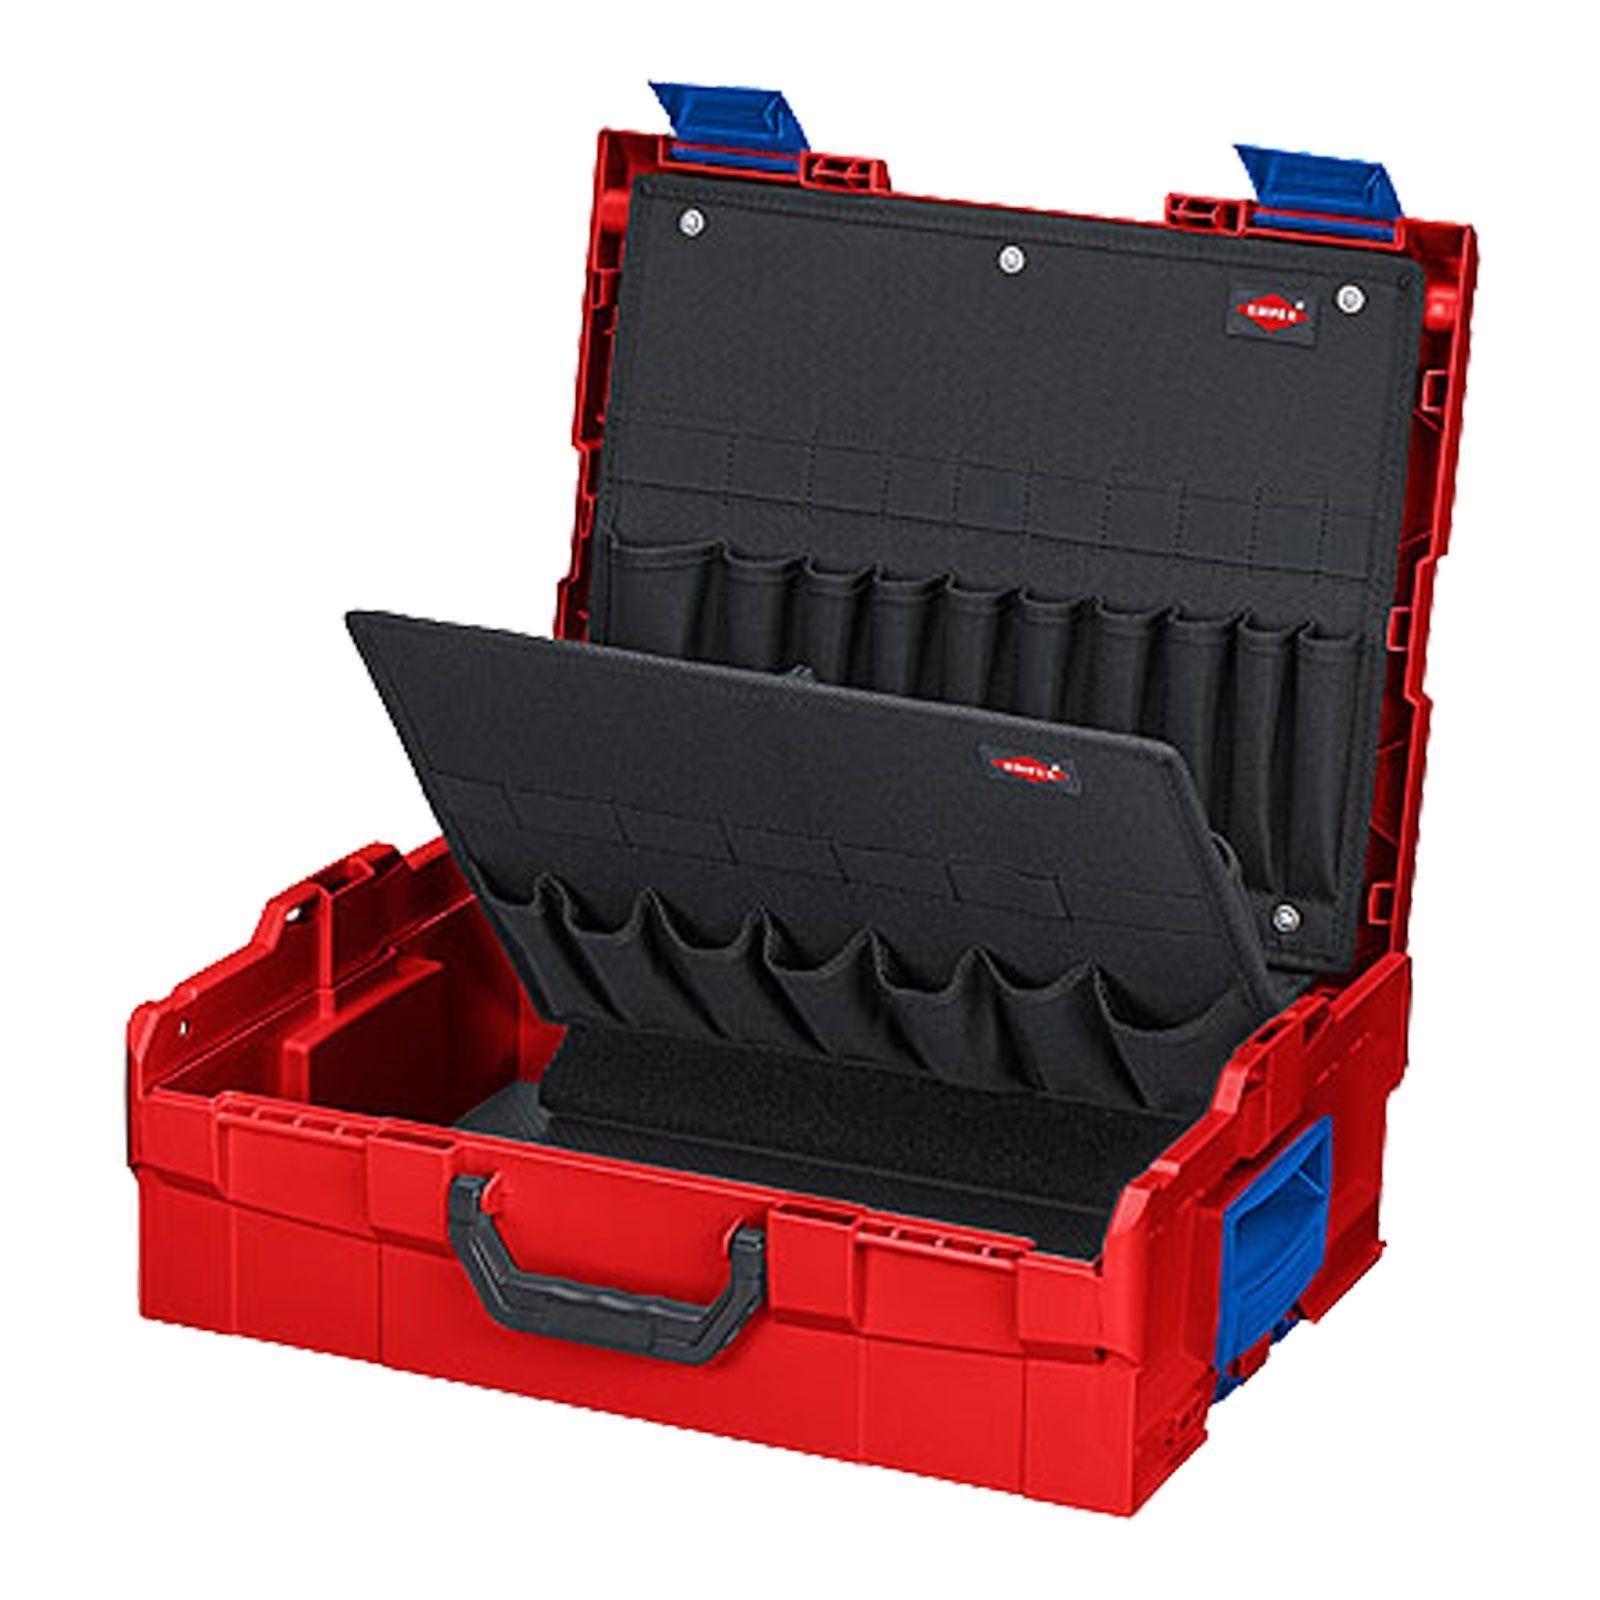 knipex l boxx leer 002119lb werkzeugstore24. Black Bedroom Furniture Sets. Home Design Ideas